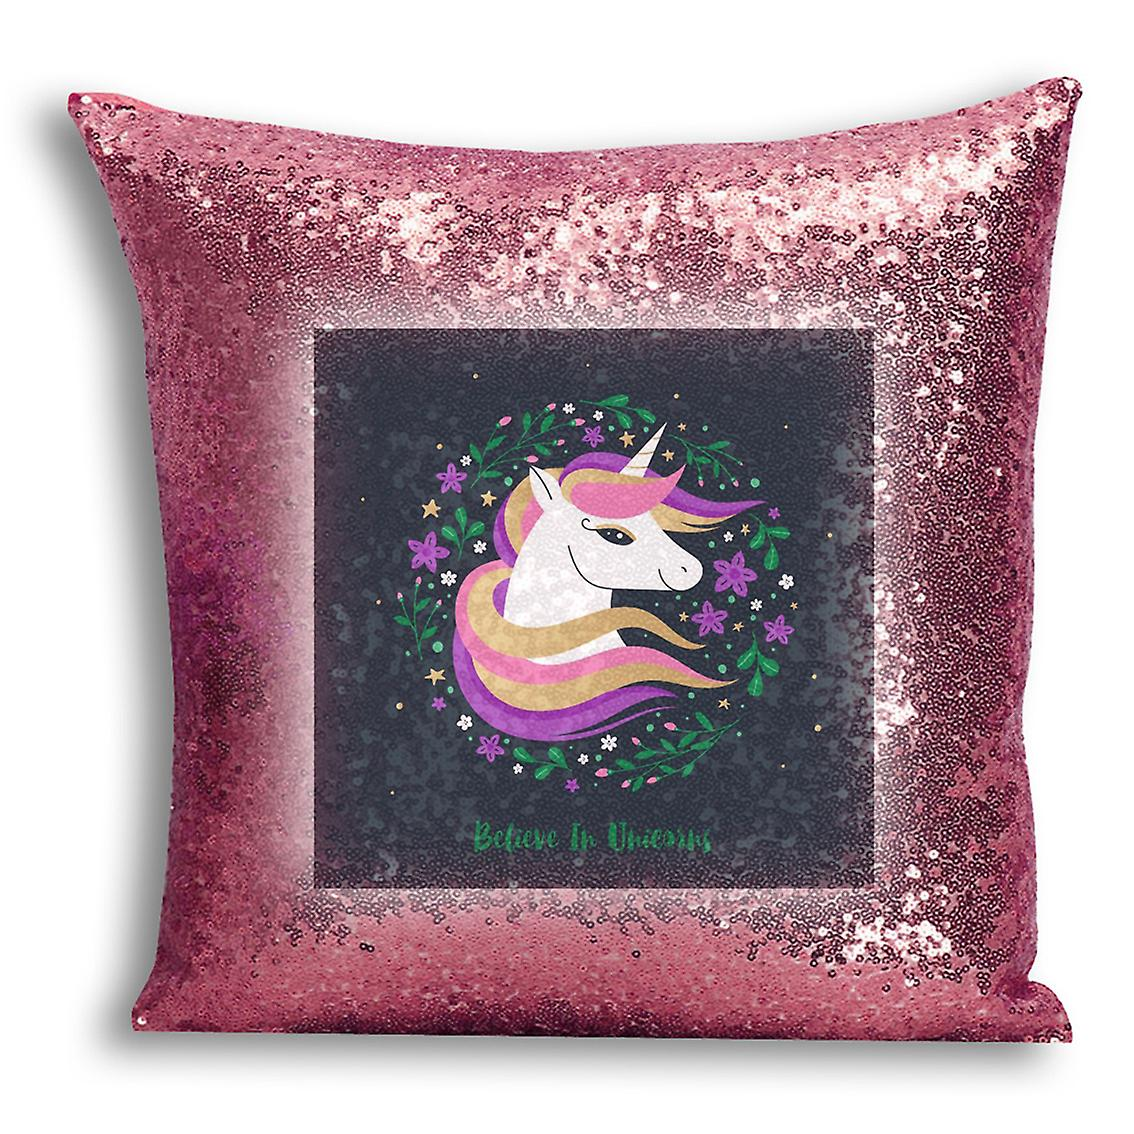 Inserted Printed CushionPillow 10 Decor Design Cover Sequin I tronixsUnicorn Home Gold Rose With For nO80vmNw